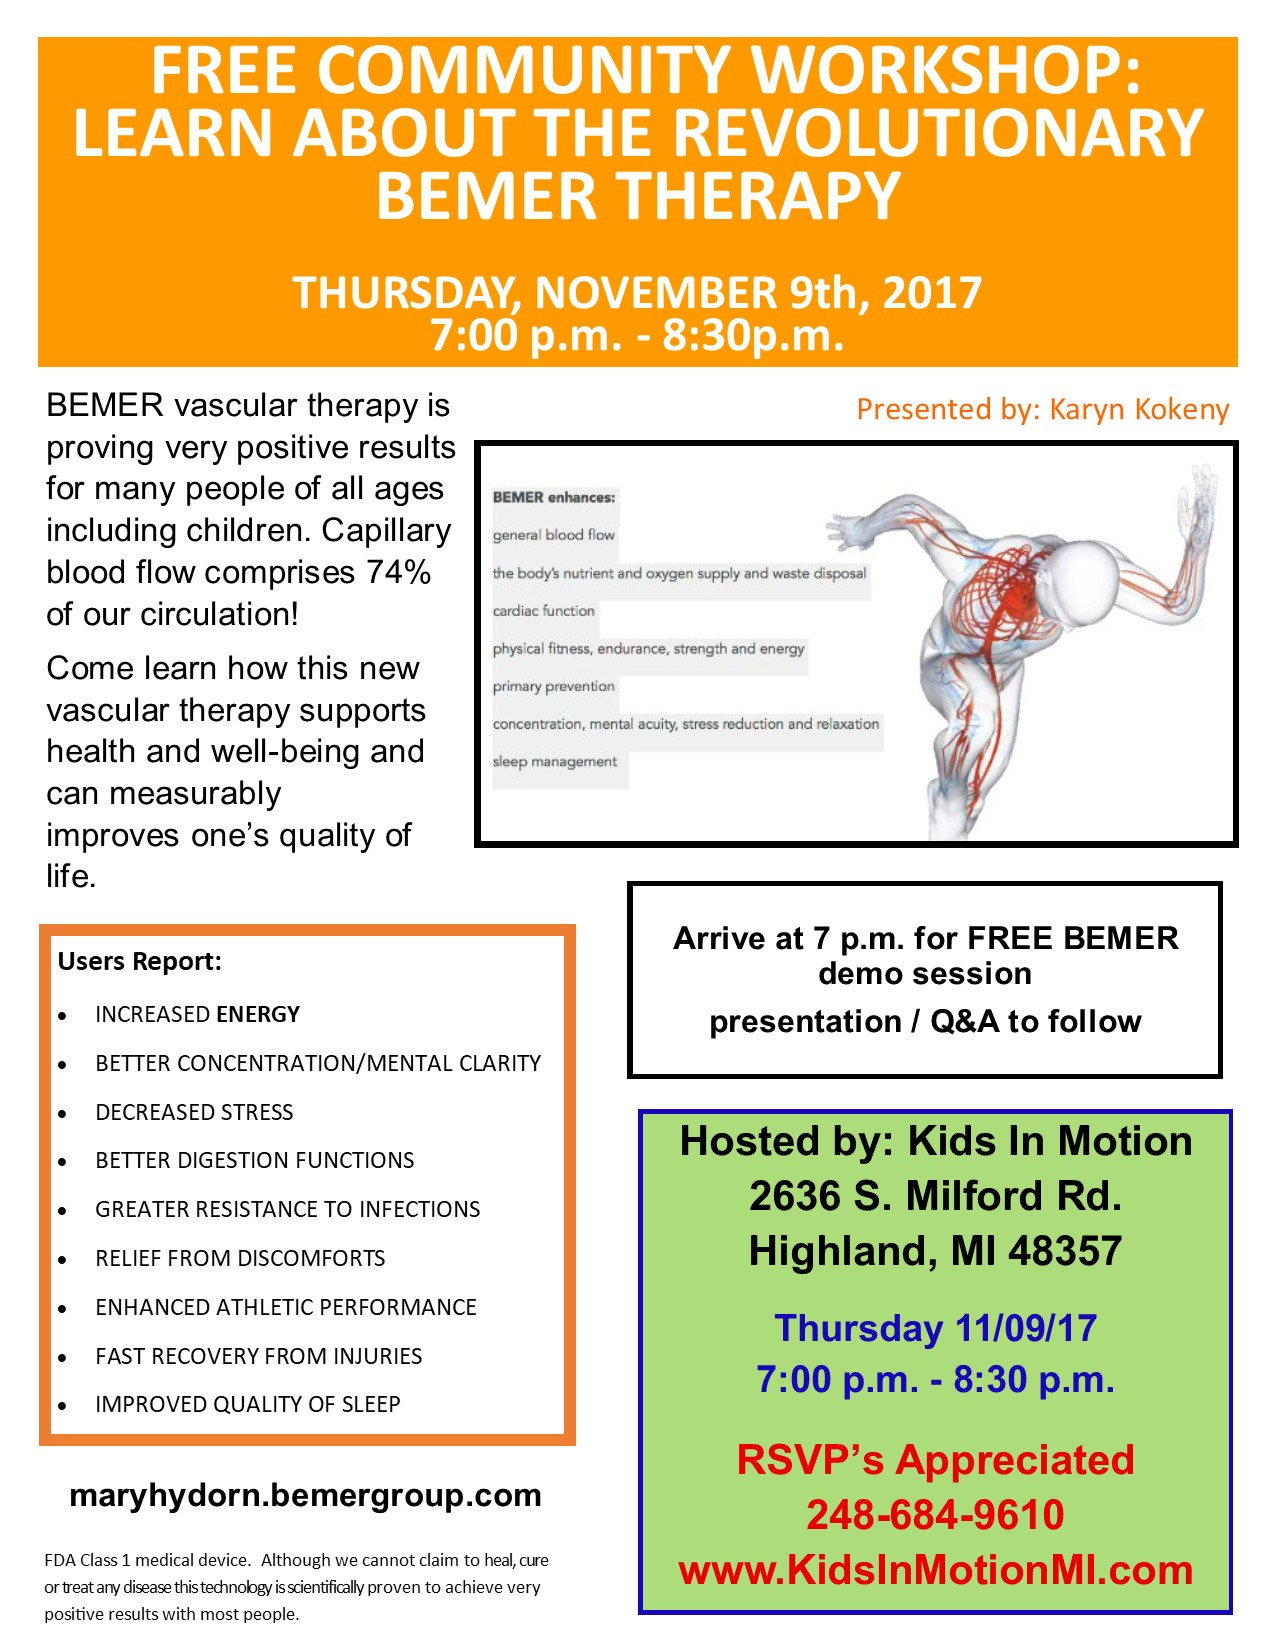 BEMER Workshop flyer Nov  9 2017 - Kids In Motion